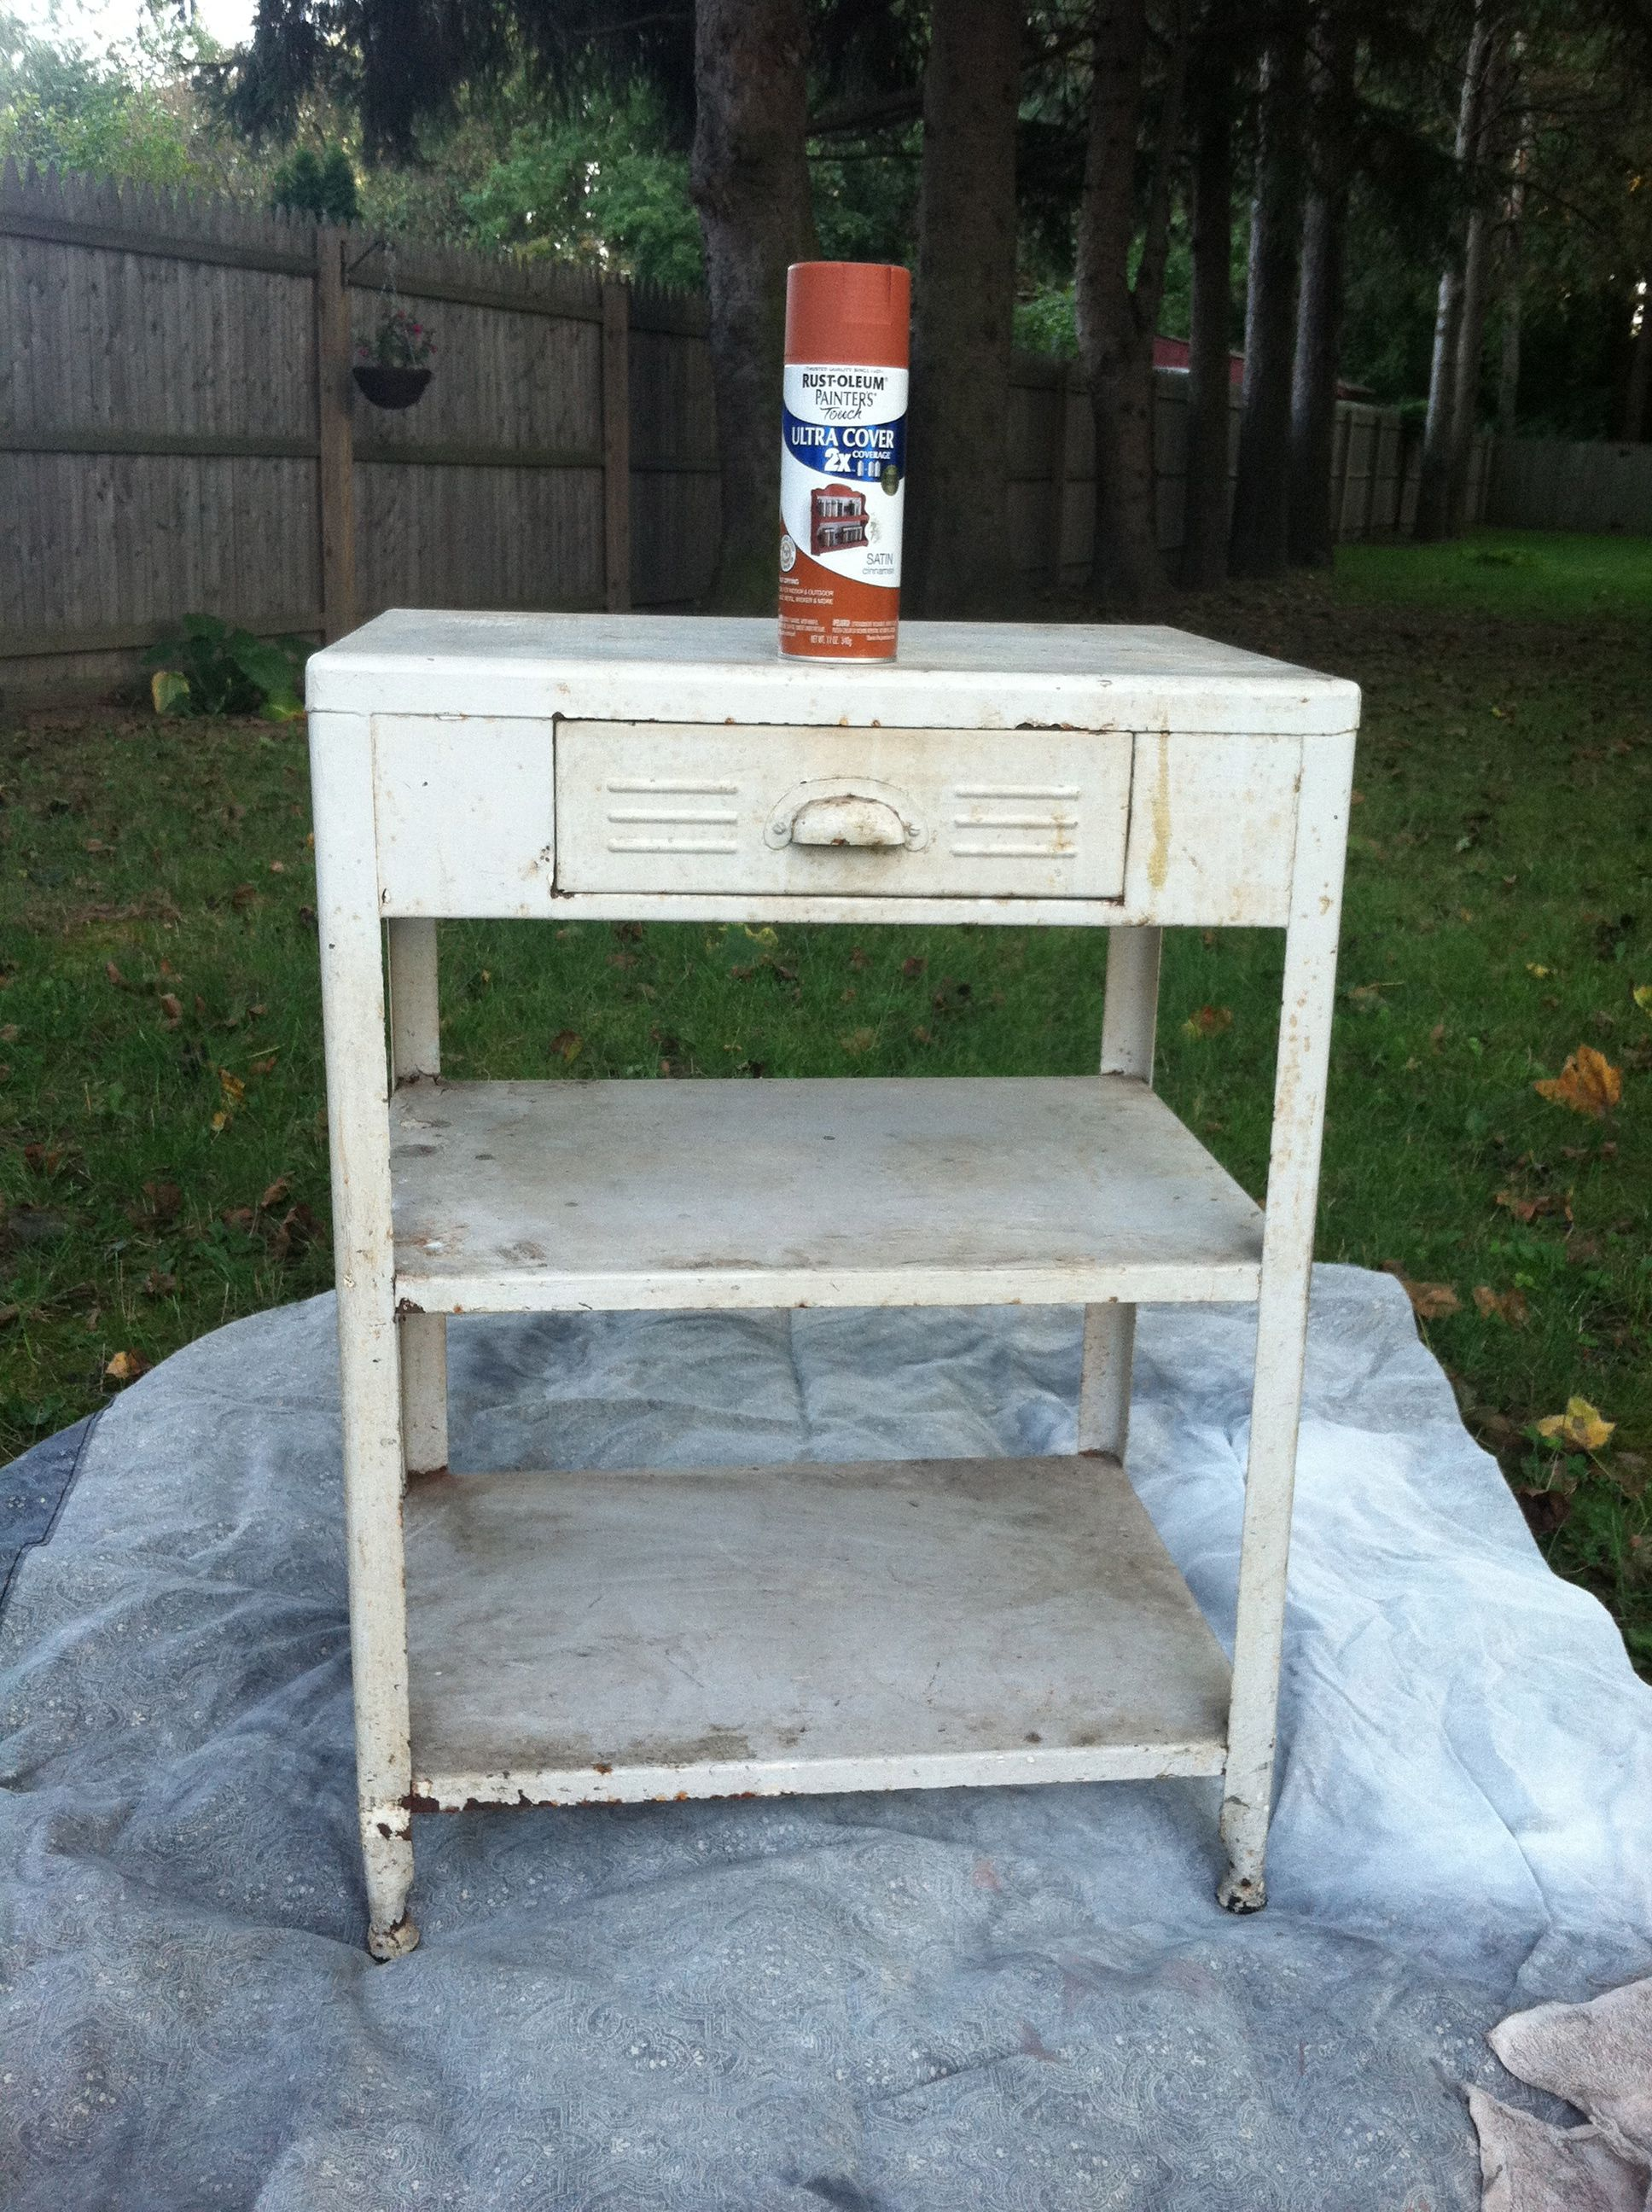 old stand left in our 1st apartment, I spray painted it burnt orange & use it next to the utility sink in the basement to set paint supplies on to dry after washing, keep bags in it for waste basket by the laundry area.